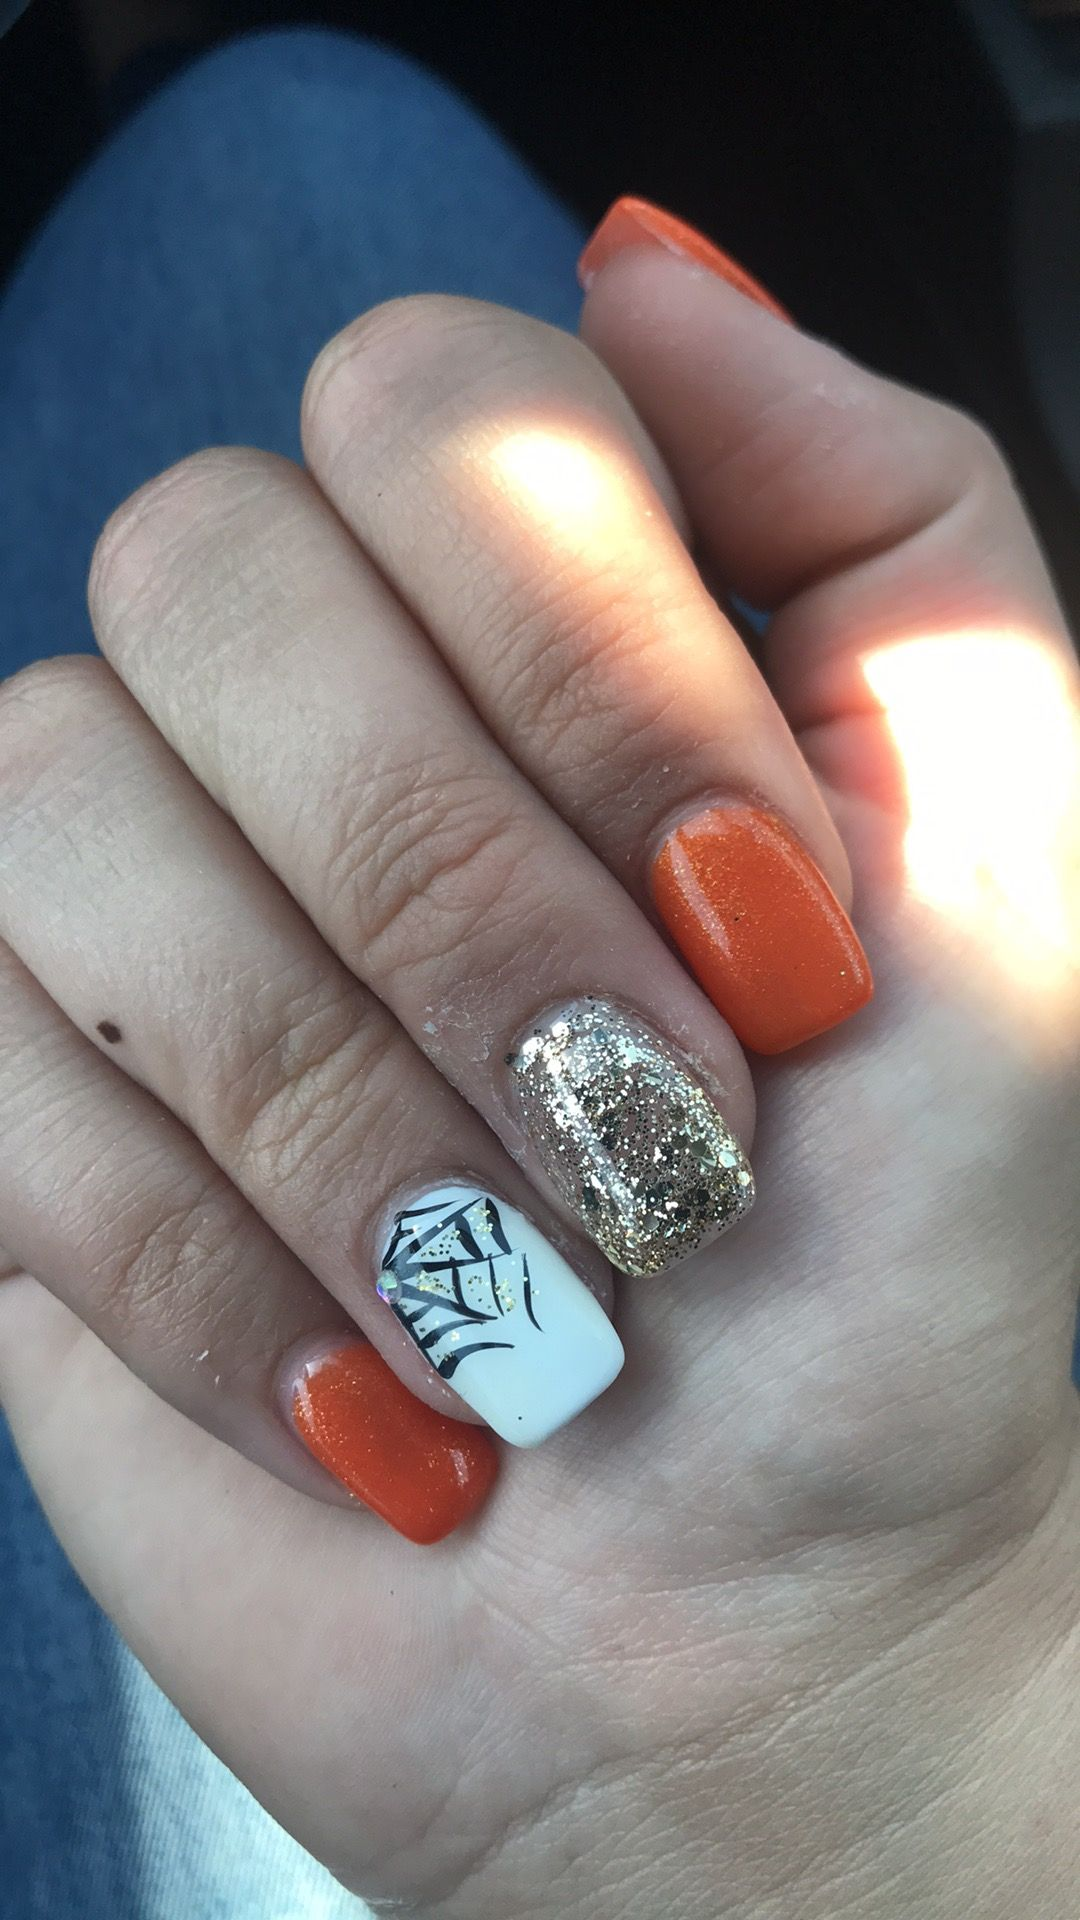 My October nails 😝 | October nails, Halloween nail designs ...